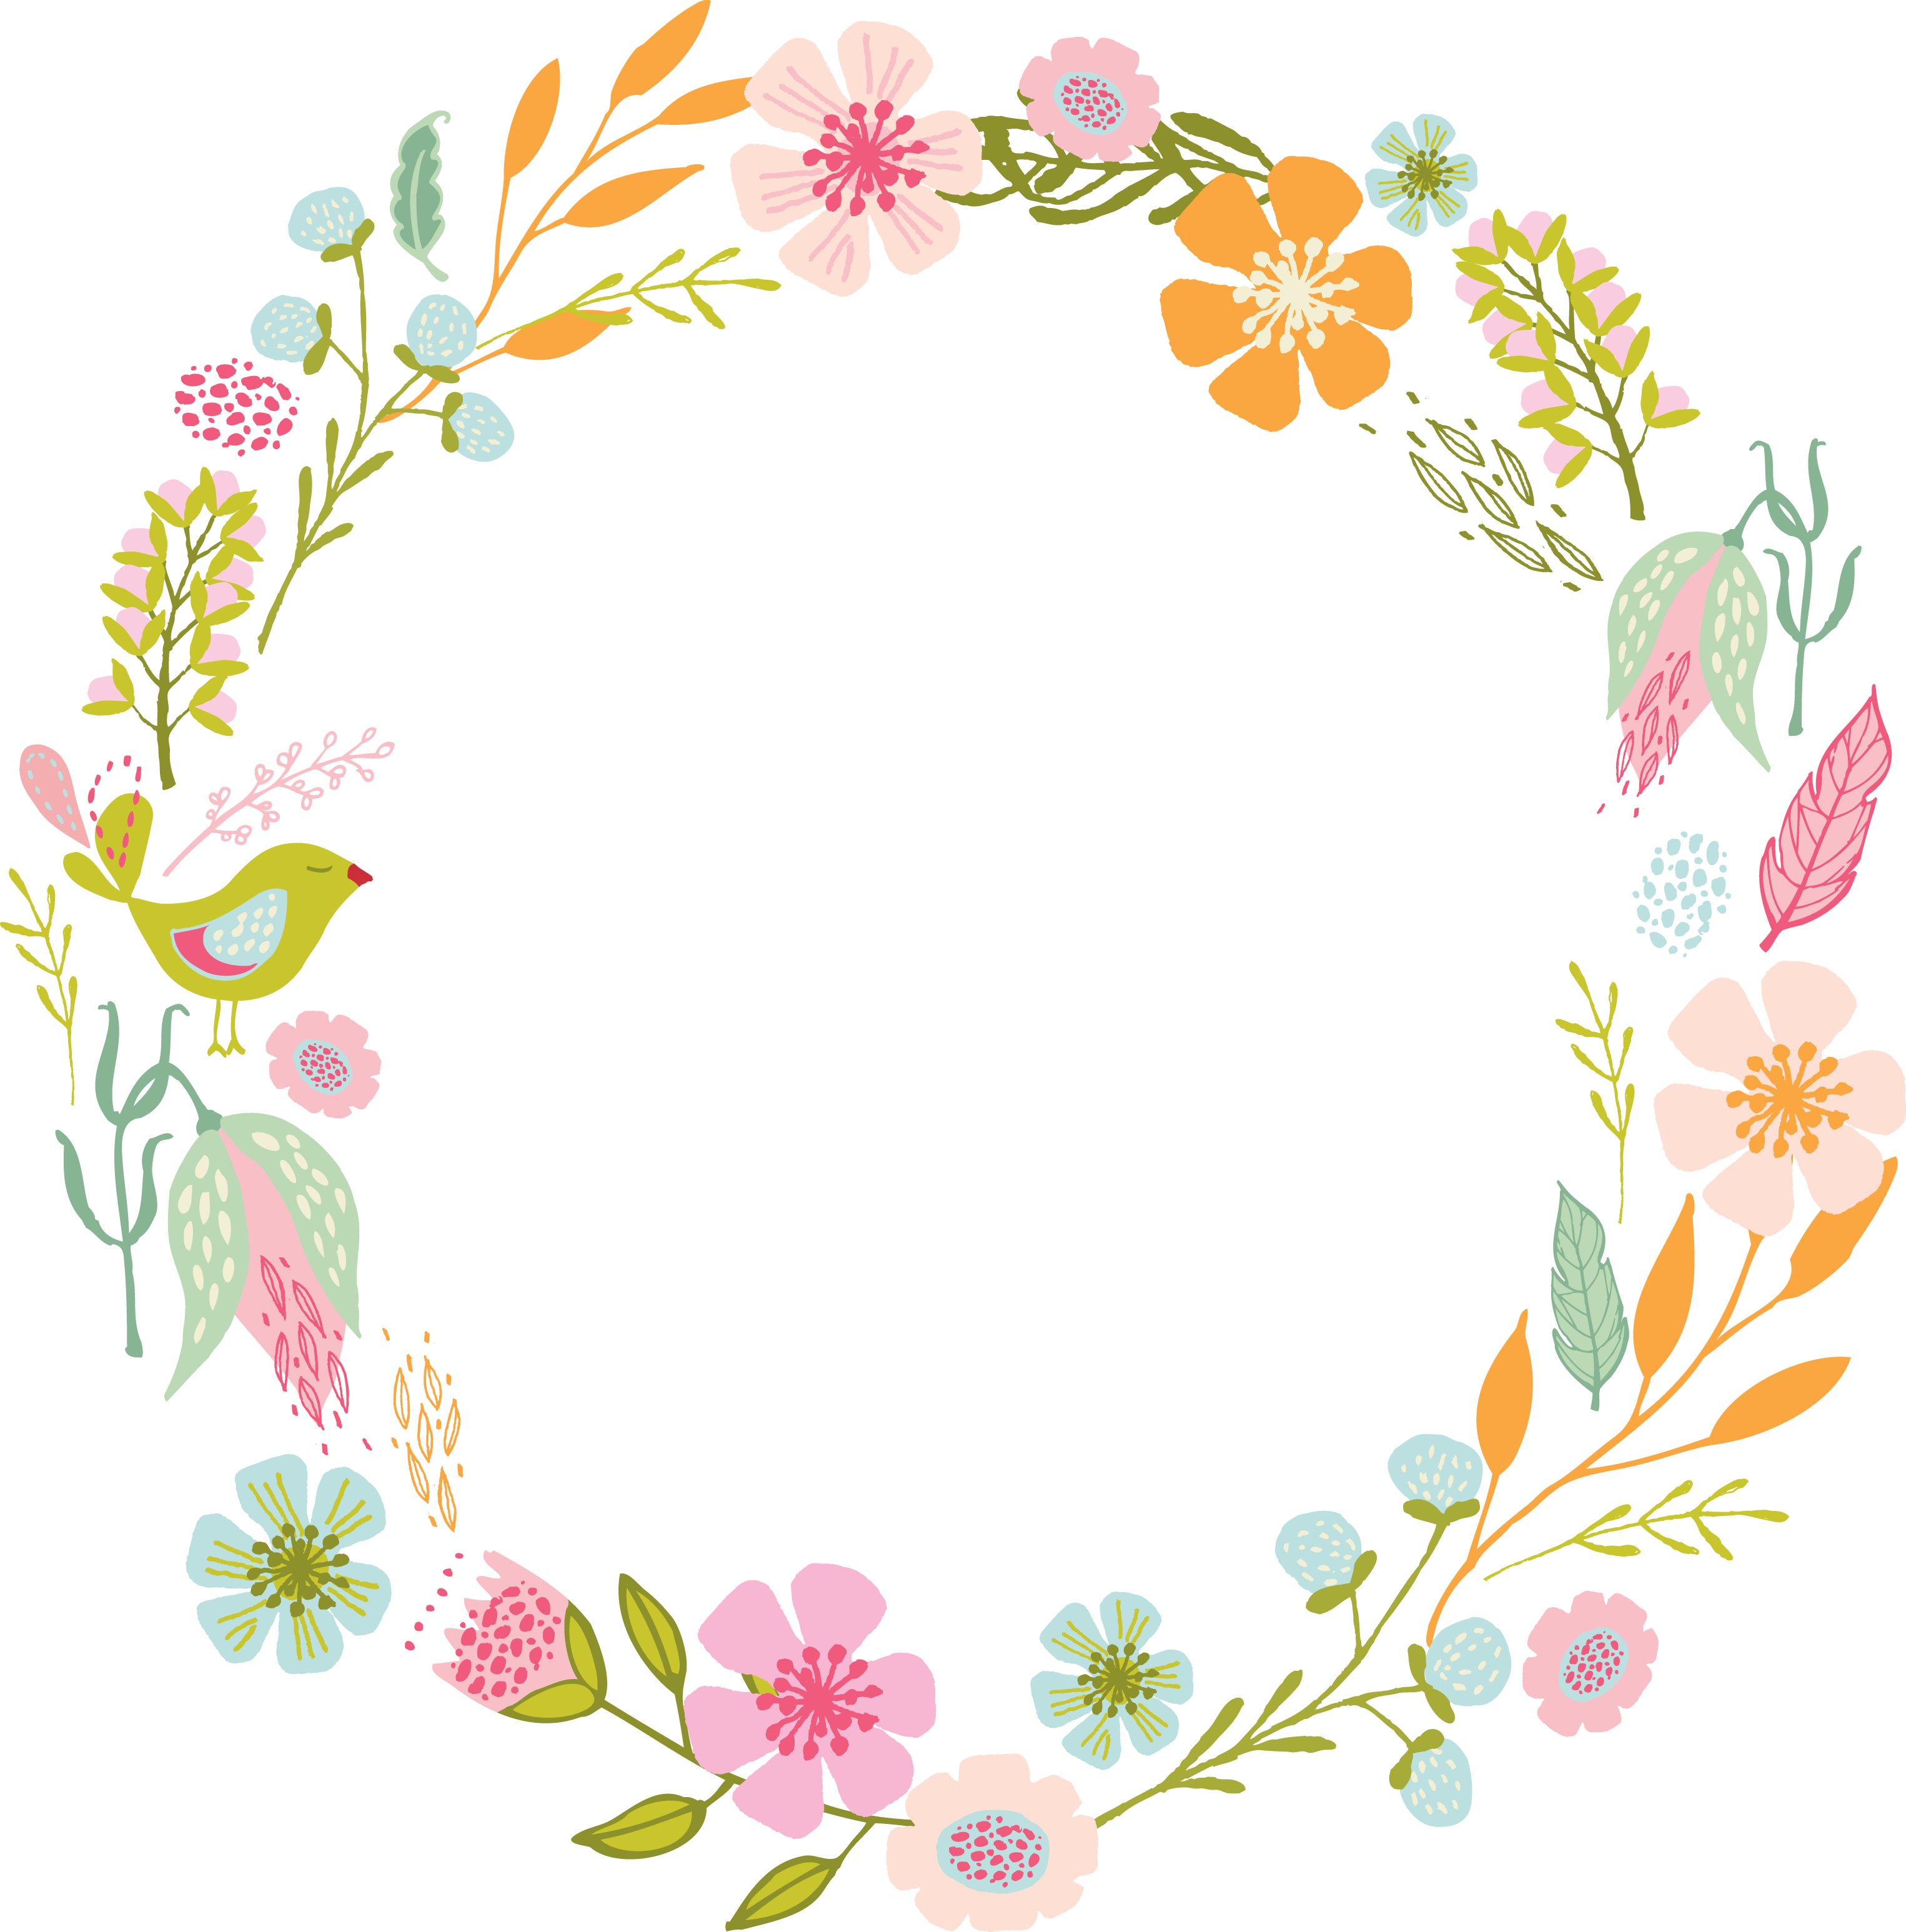 Marcos vector floral. Image result for flores